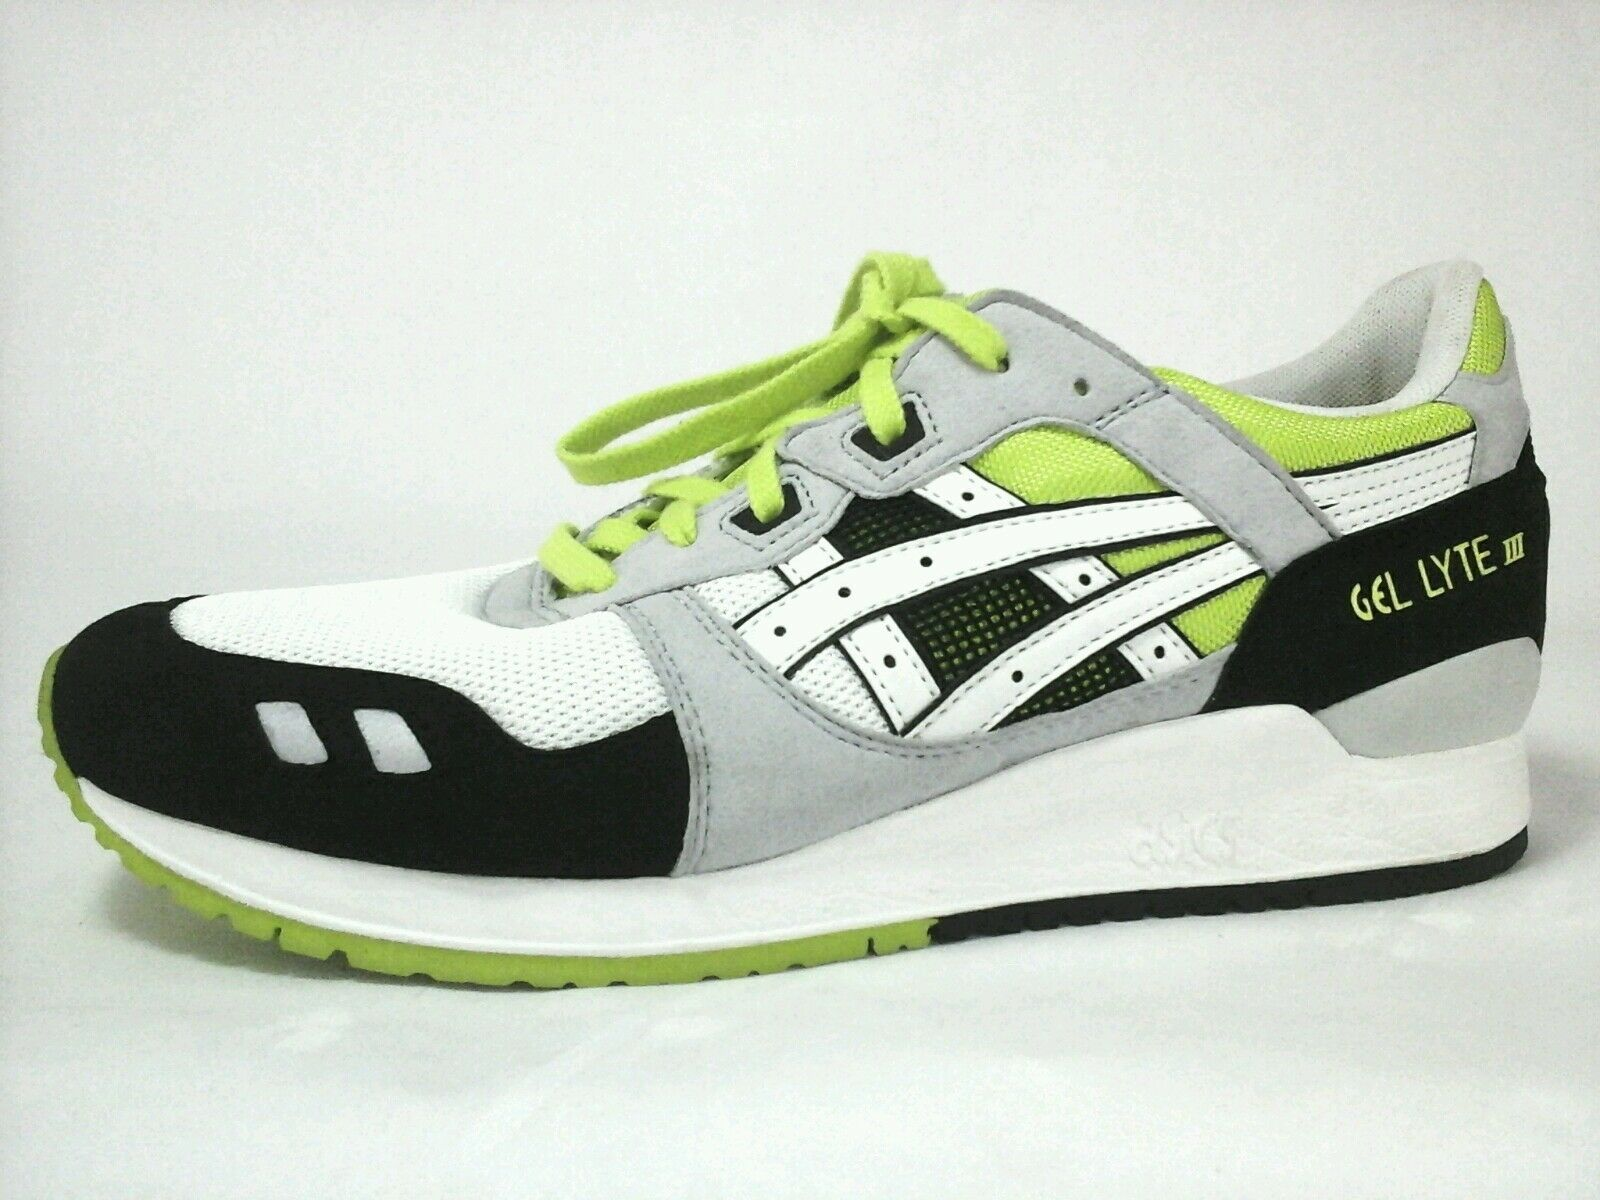 Sneakers Cwqzf6 3 Asics Hommes Iii Lyte Chaussures Gel RIwAqx0